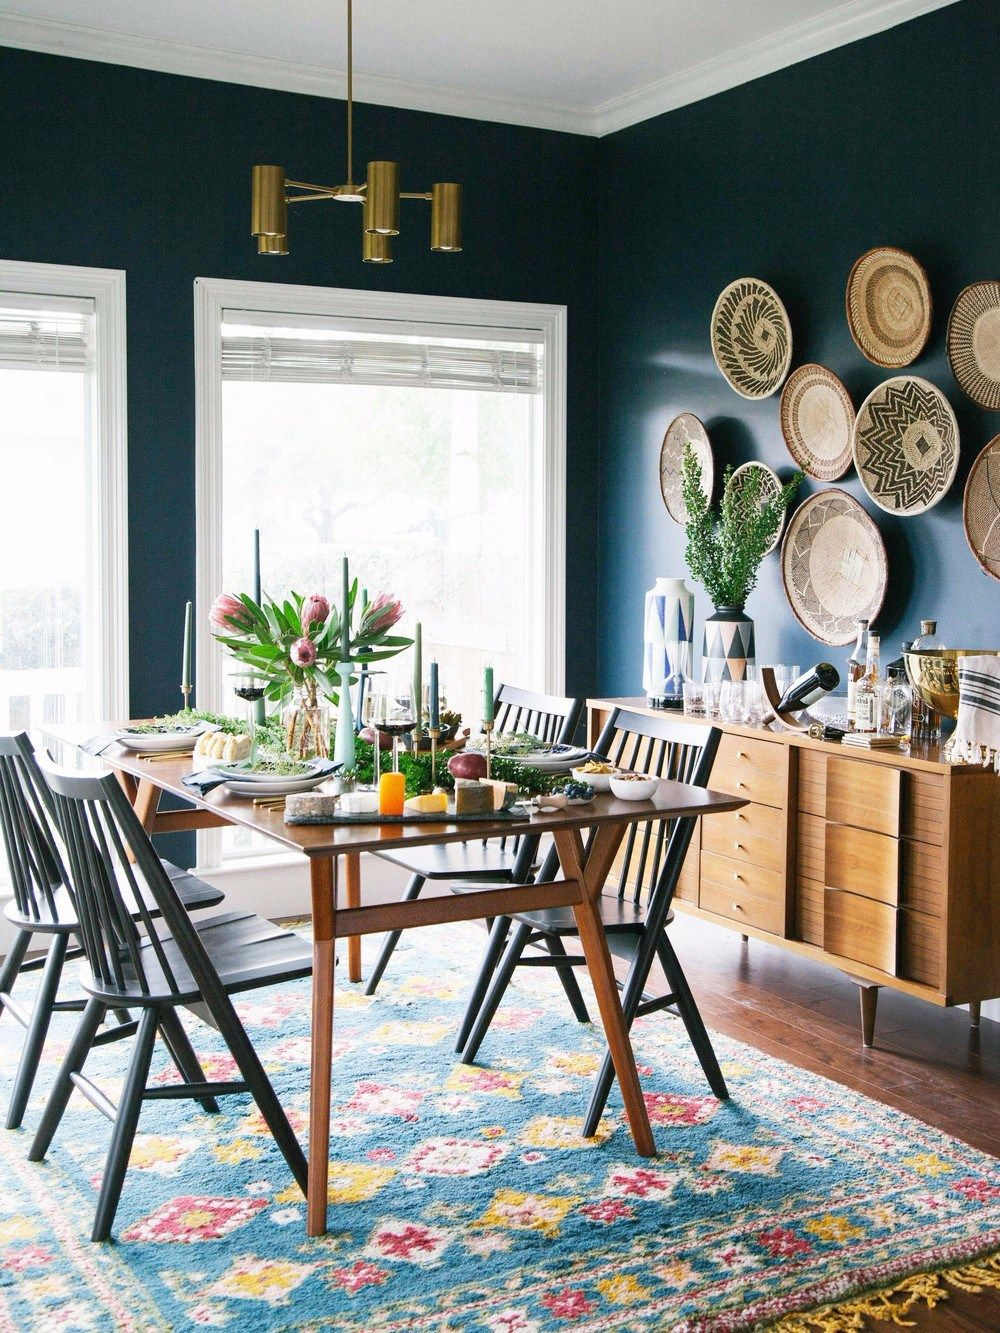 small bohemian style dining room design with images dining room blue mid century dining on boho chic dining room kitchen dining tables id=29863